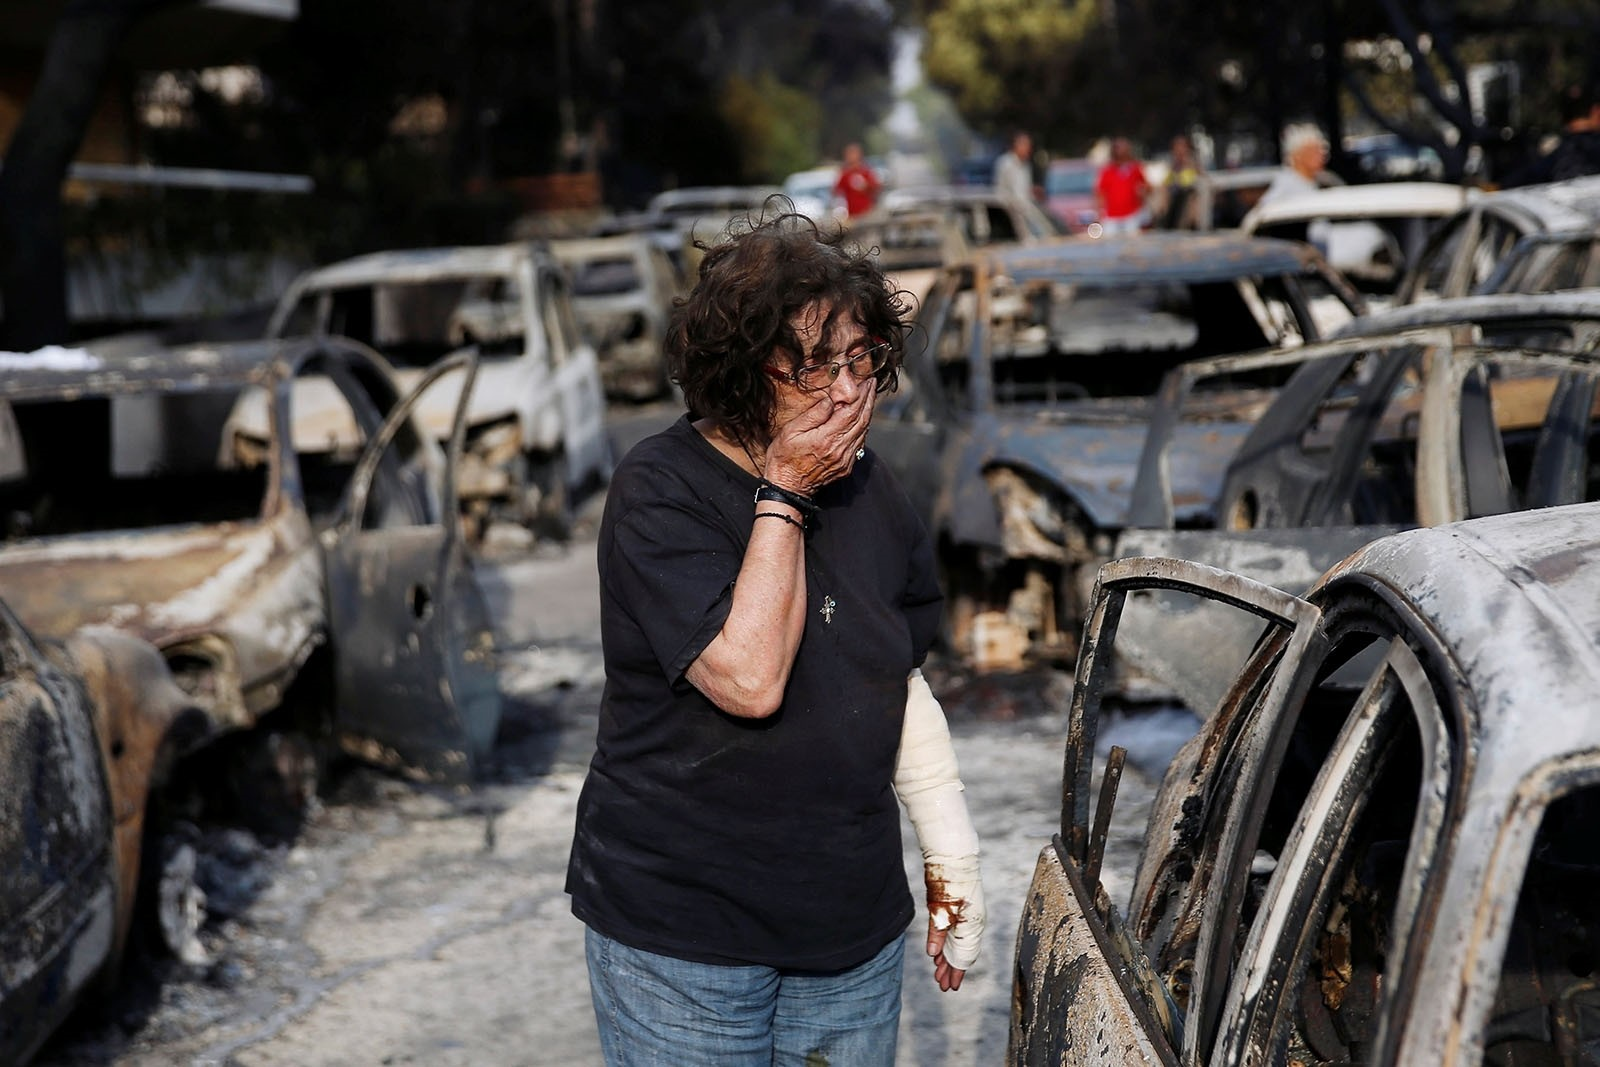 A woman reacts as she tries to find her dog, following a wildfire at the village of Mati, near Athens, Greece July 24, 2018.